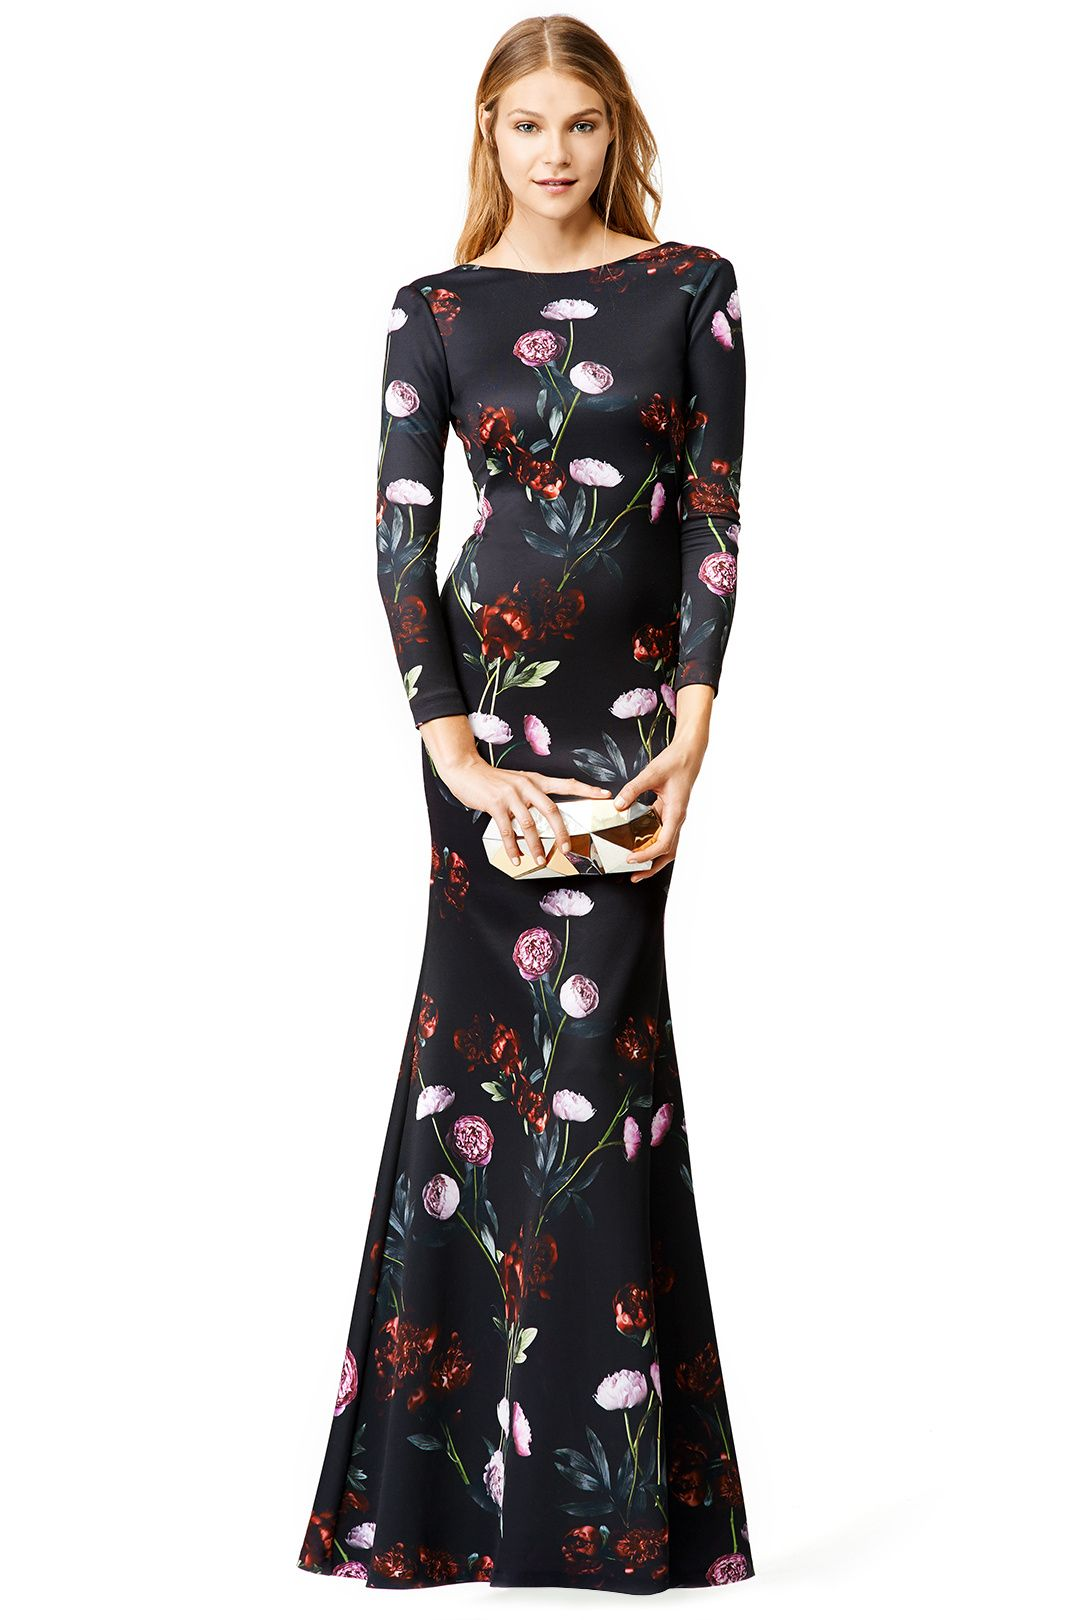 Falling Peonies Gown By Erin Fetherston For 95 Only At The Runway